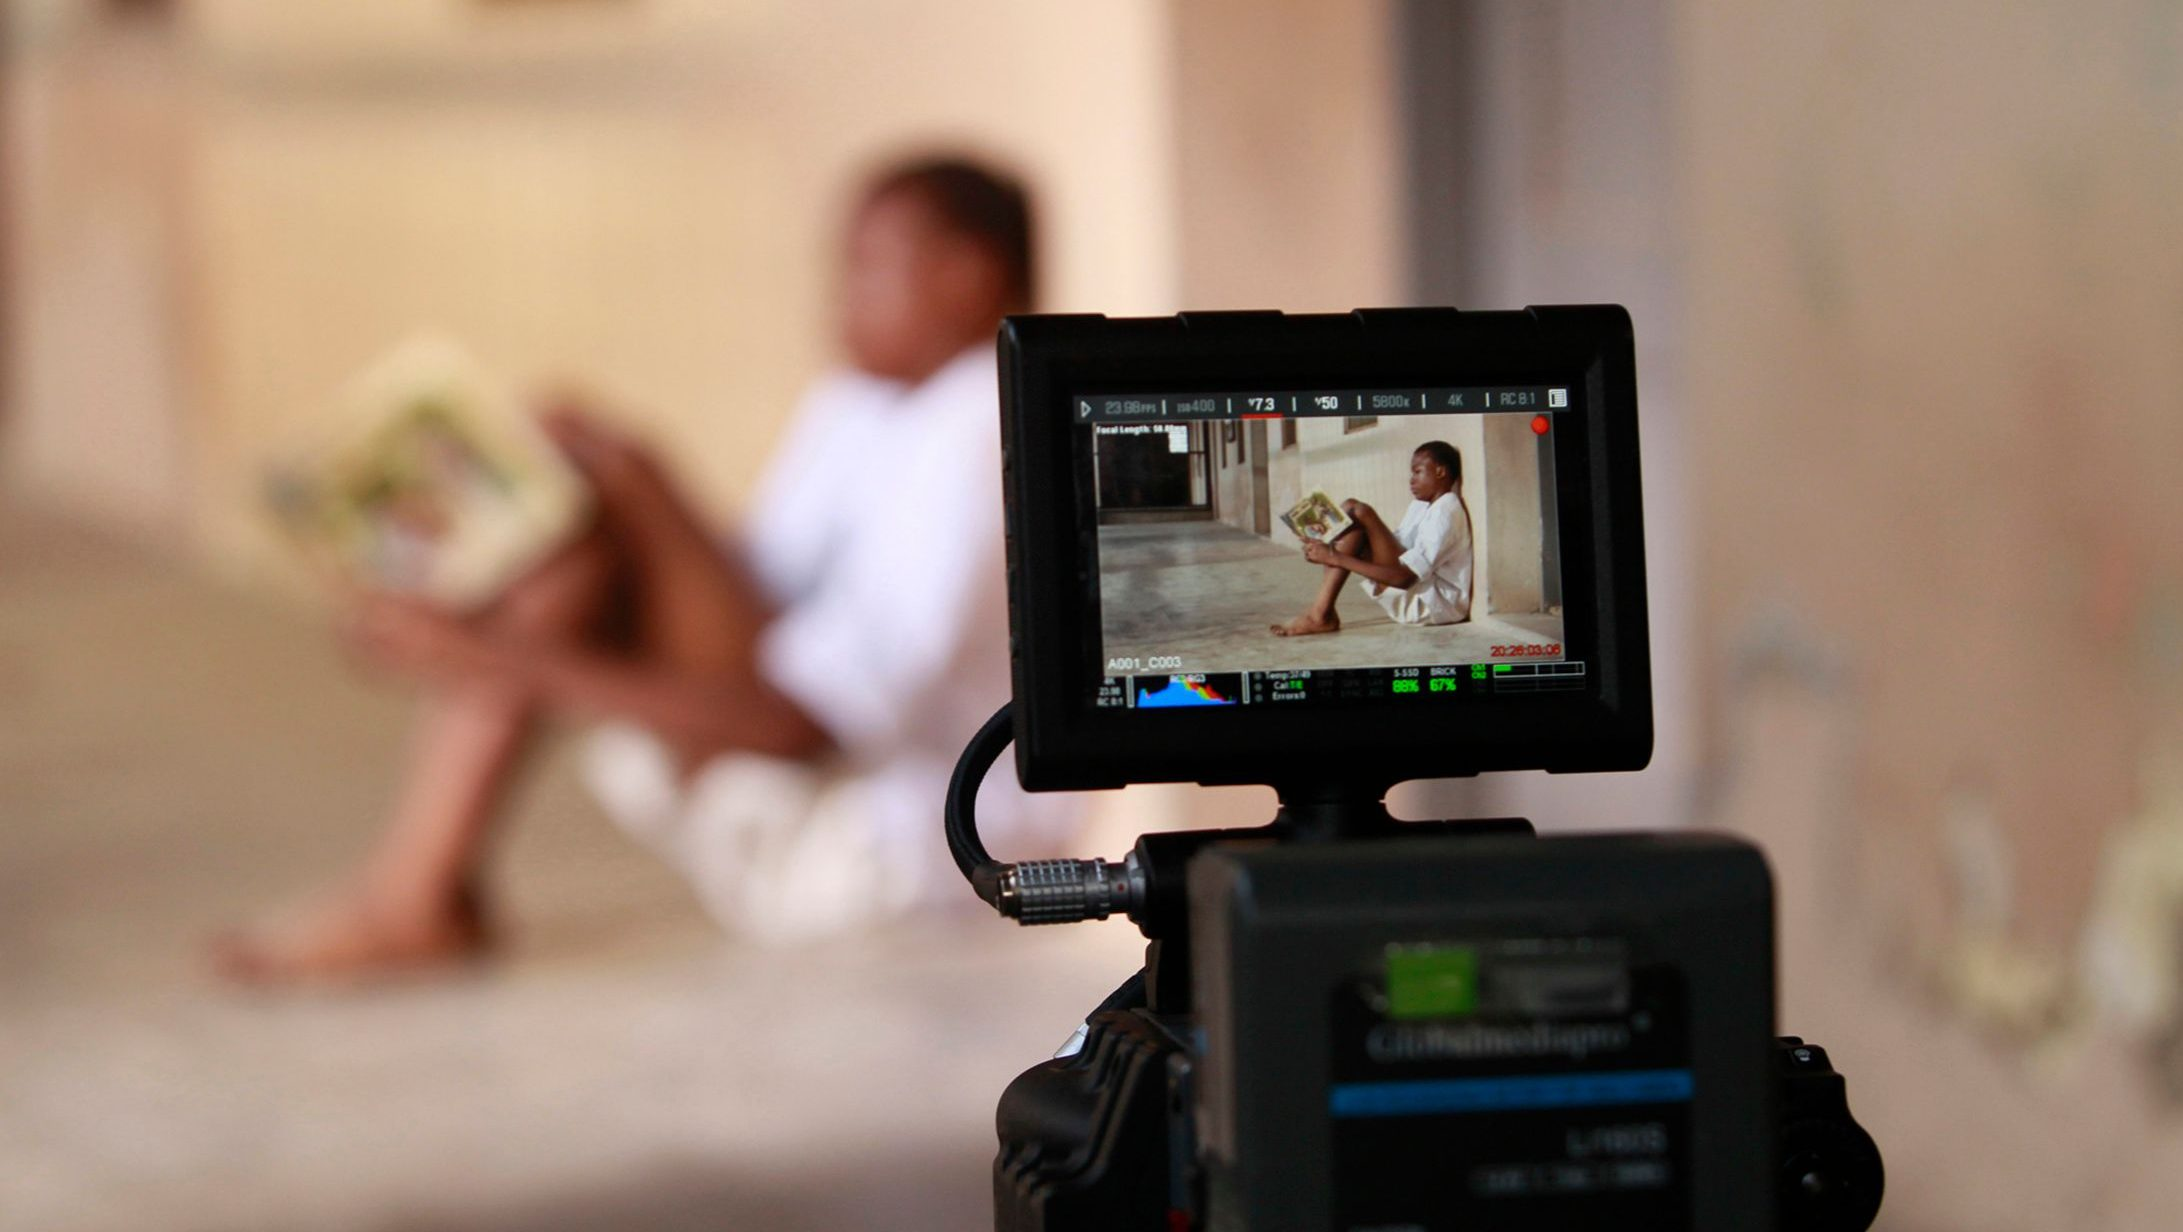 Princeton researchers used Nollywood to test Nigerian corruption